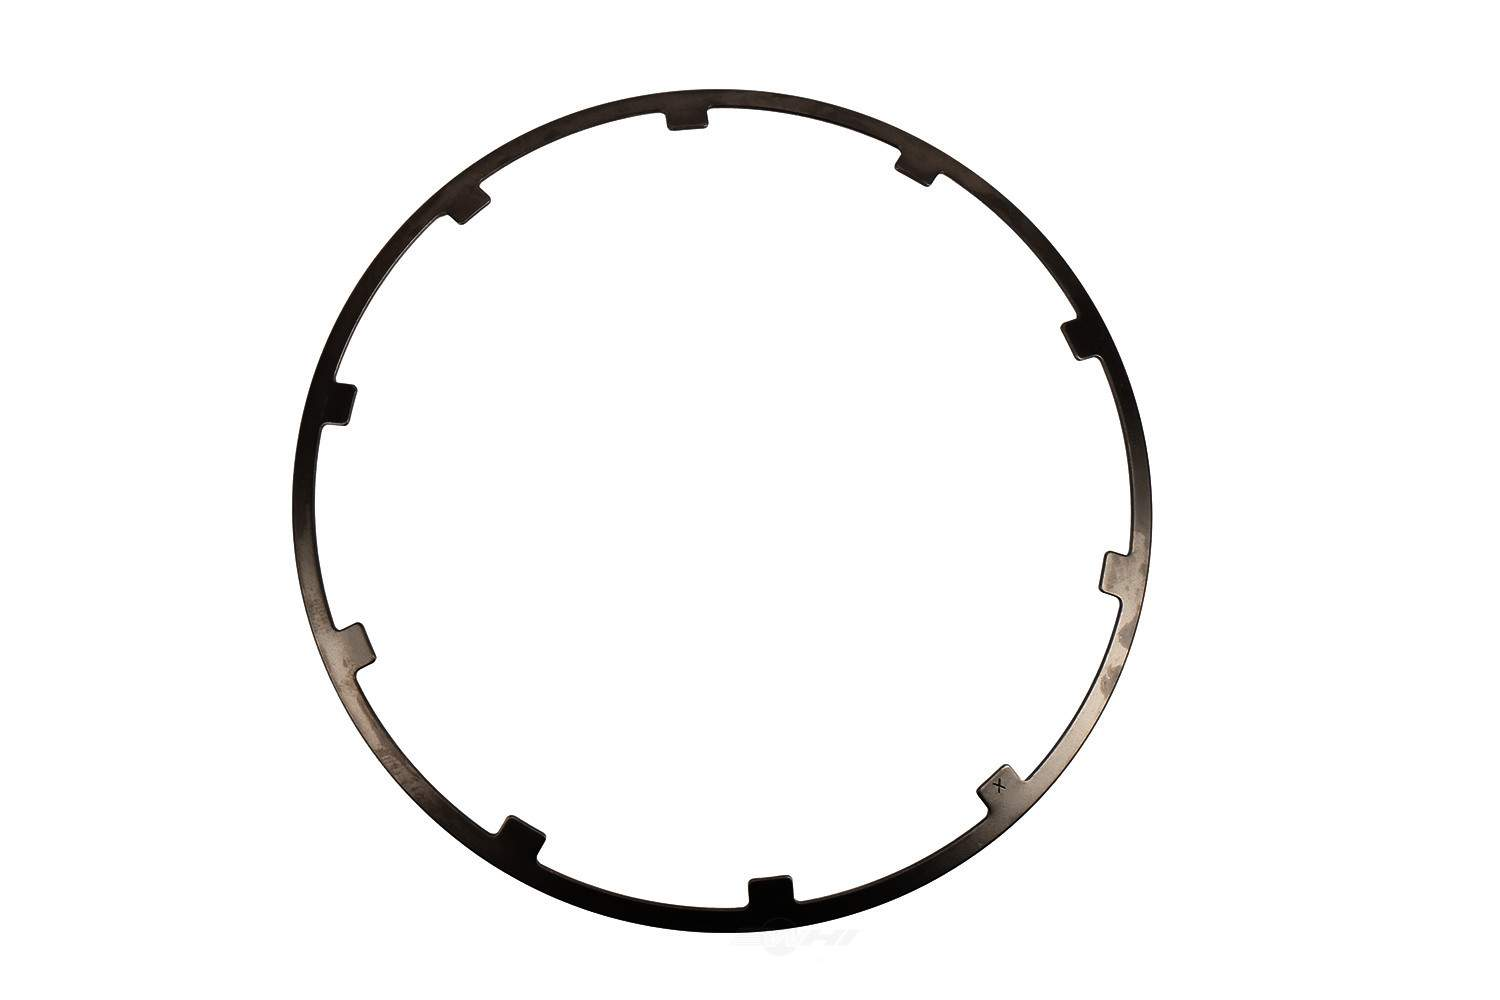 ACDELCO OE SERVICE - Low & Reverse Clutch Spring - DCB 24233792